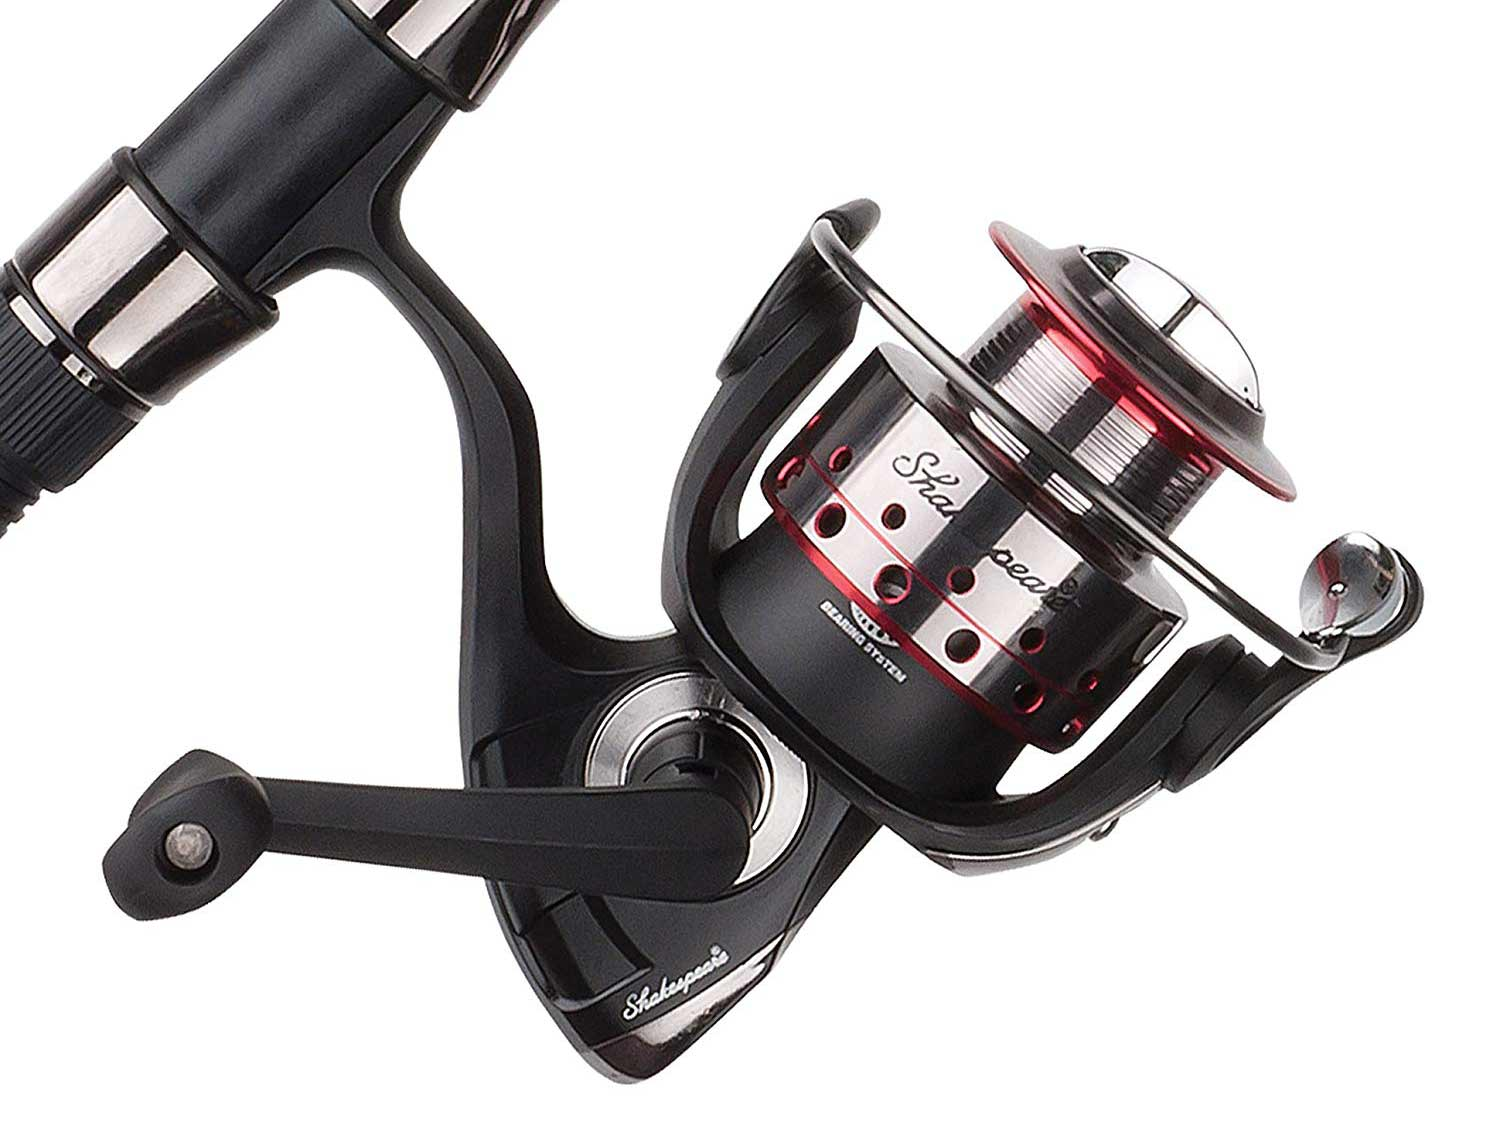 How to Pick The Right Fishing Rod and Reel Combo